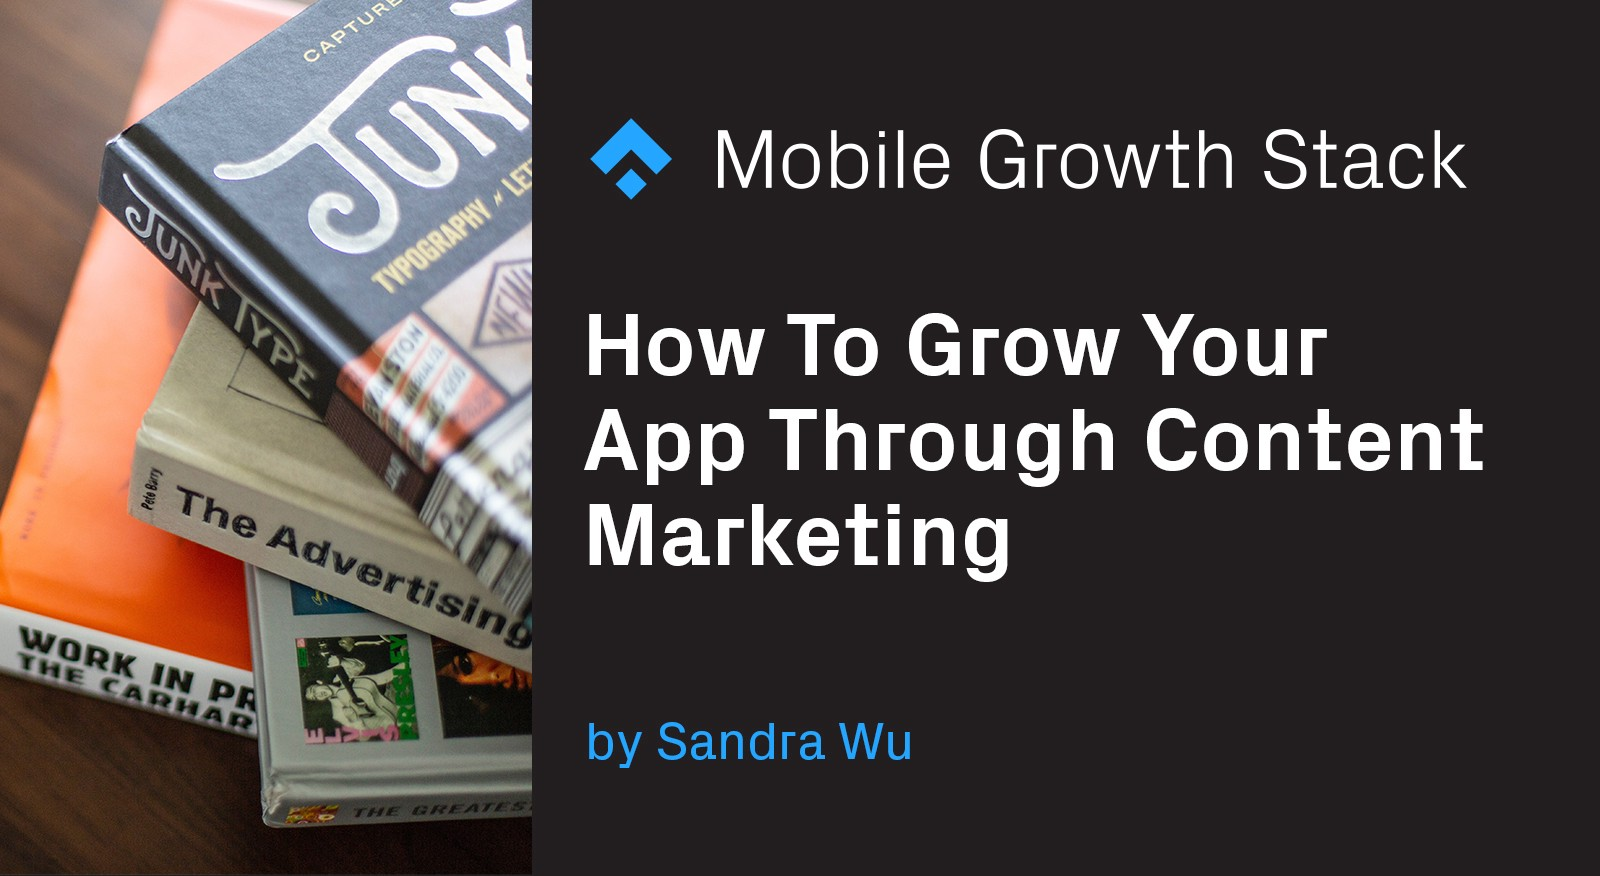 Common Sense MobileMarketing: How To Add Mobile Marketing To Your Marketing Mix